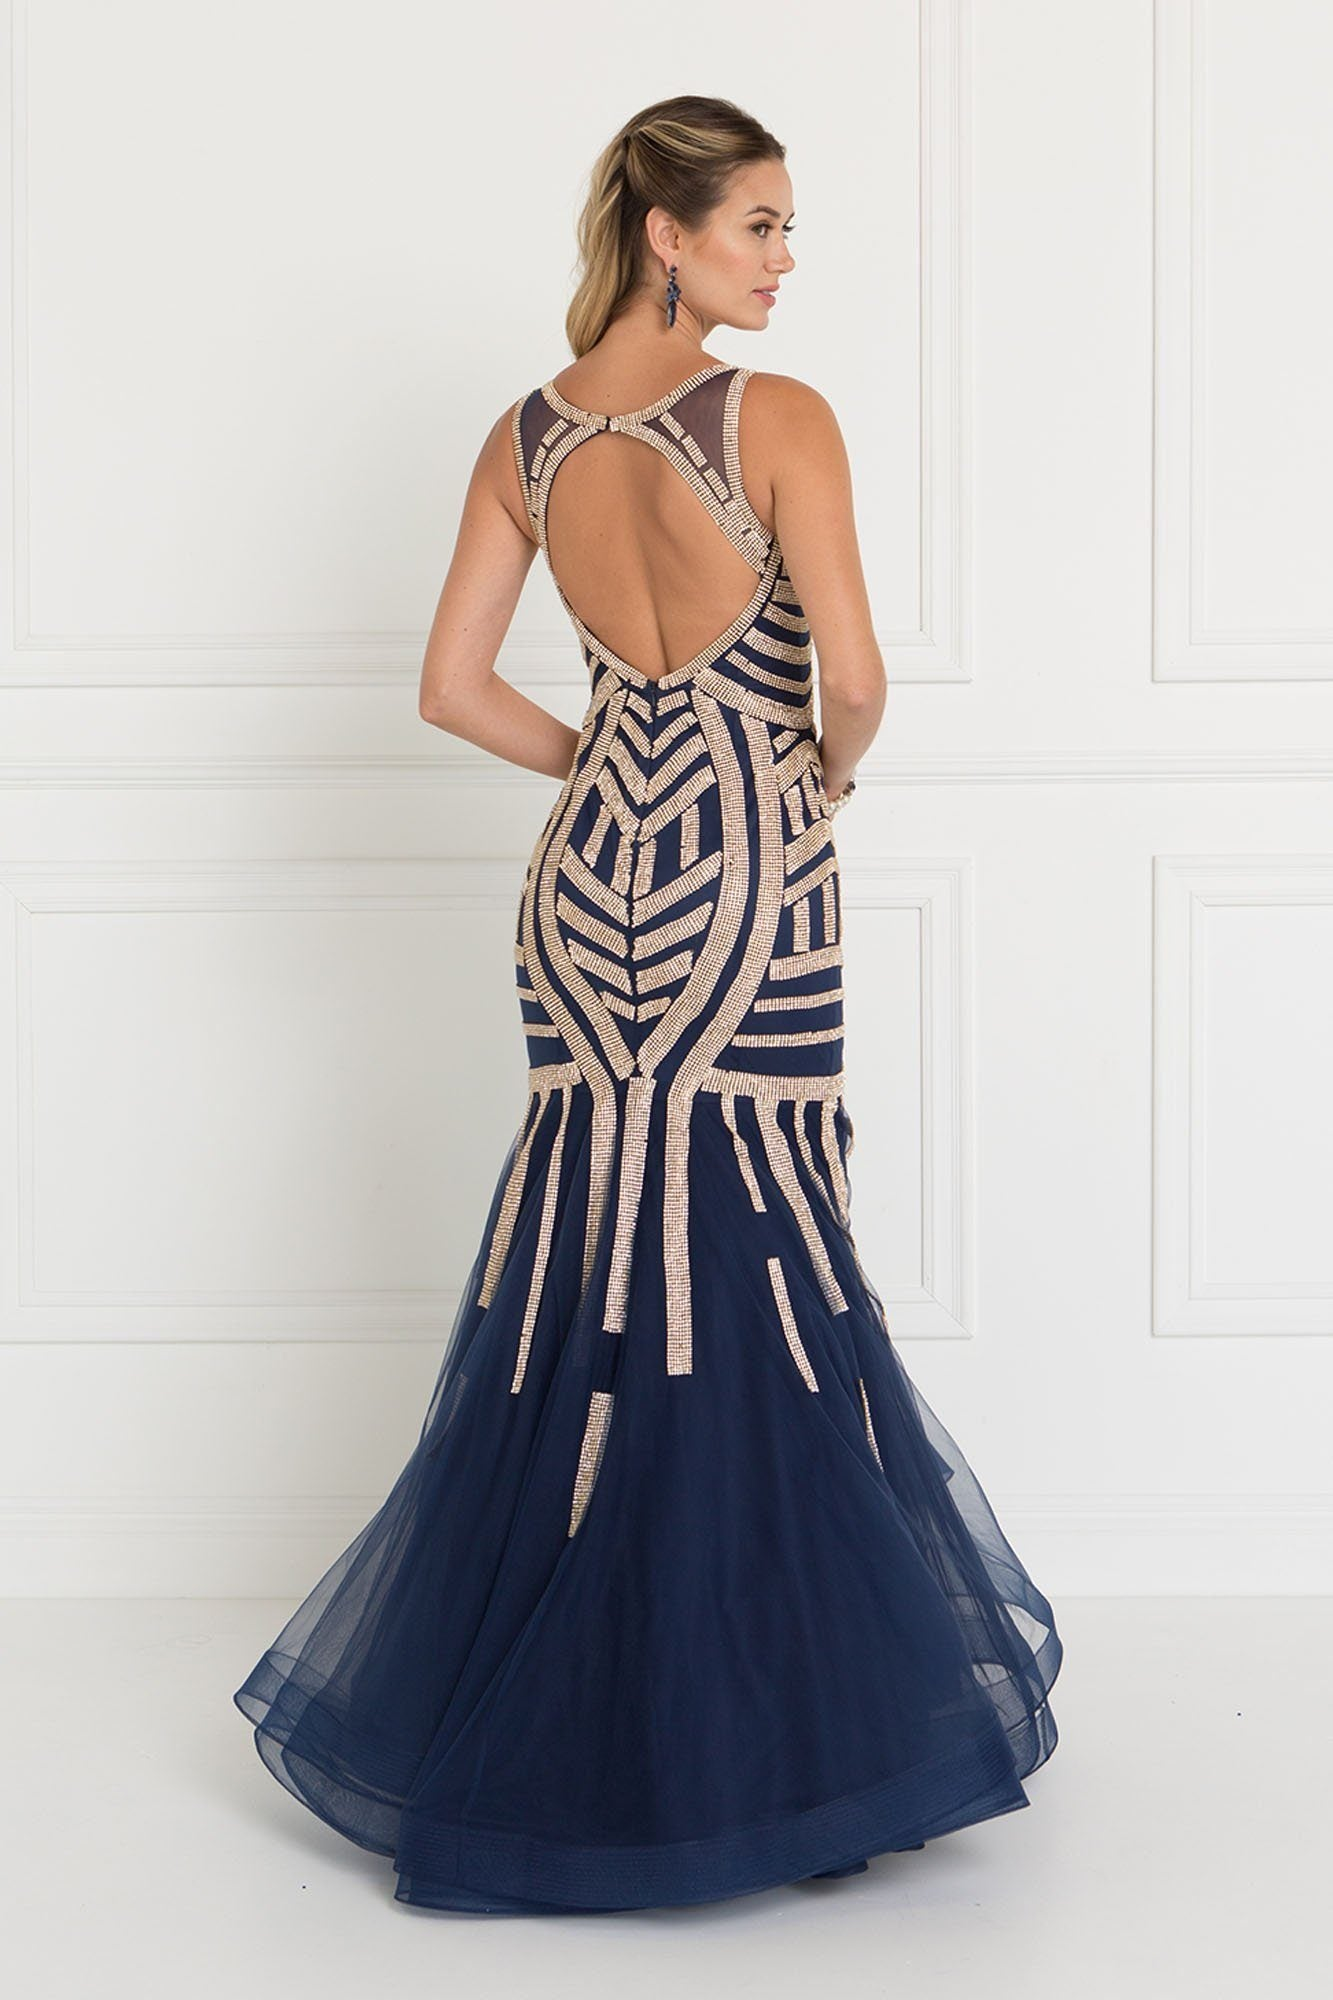 Fabulous Prom Dresses Sparkly